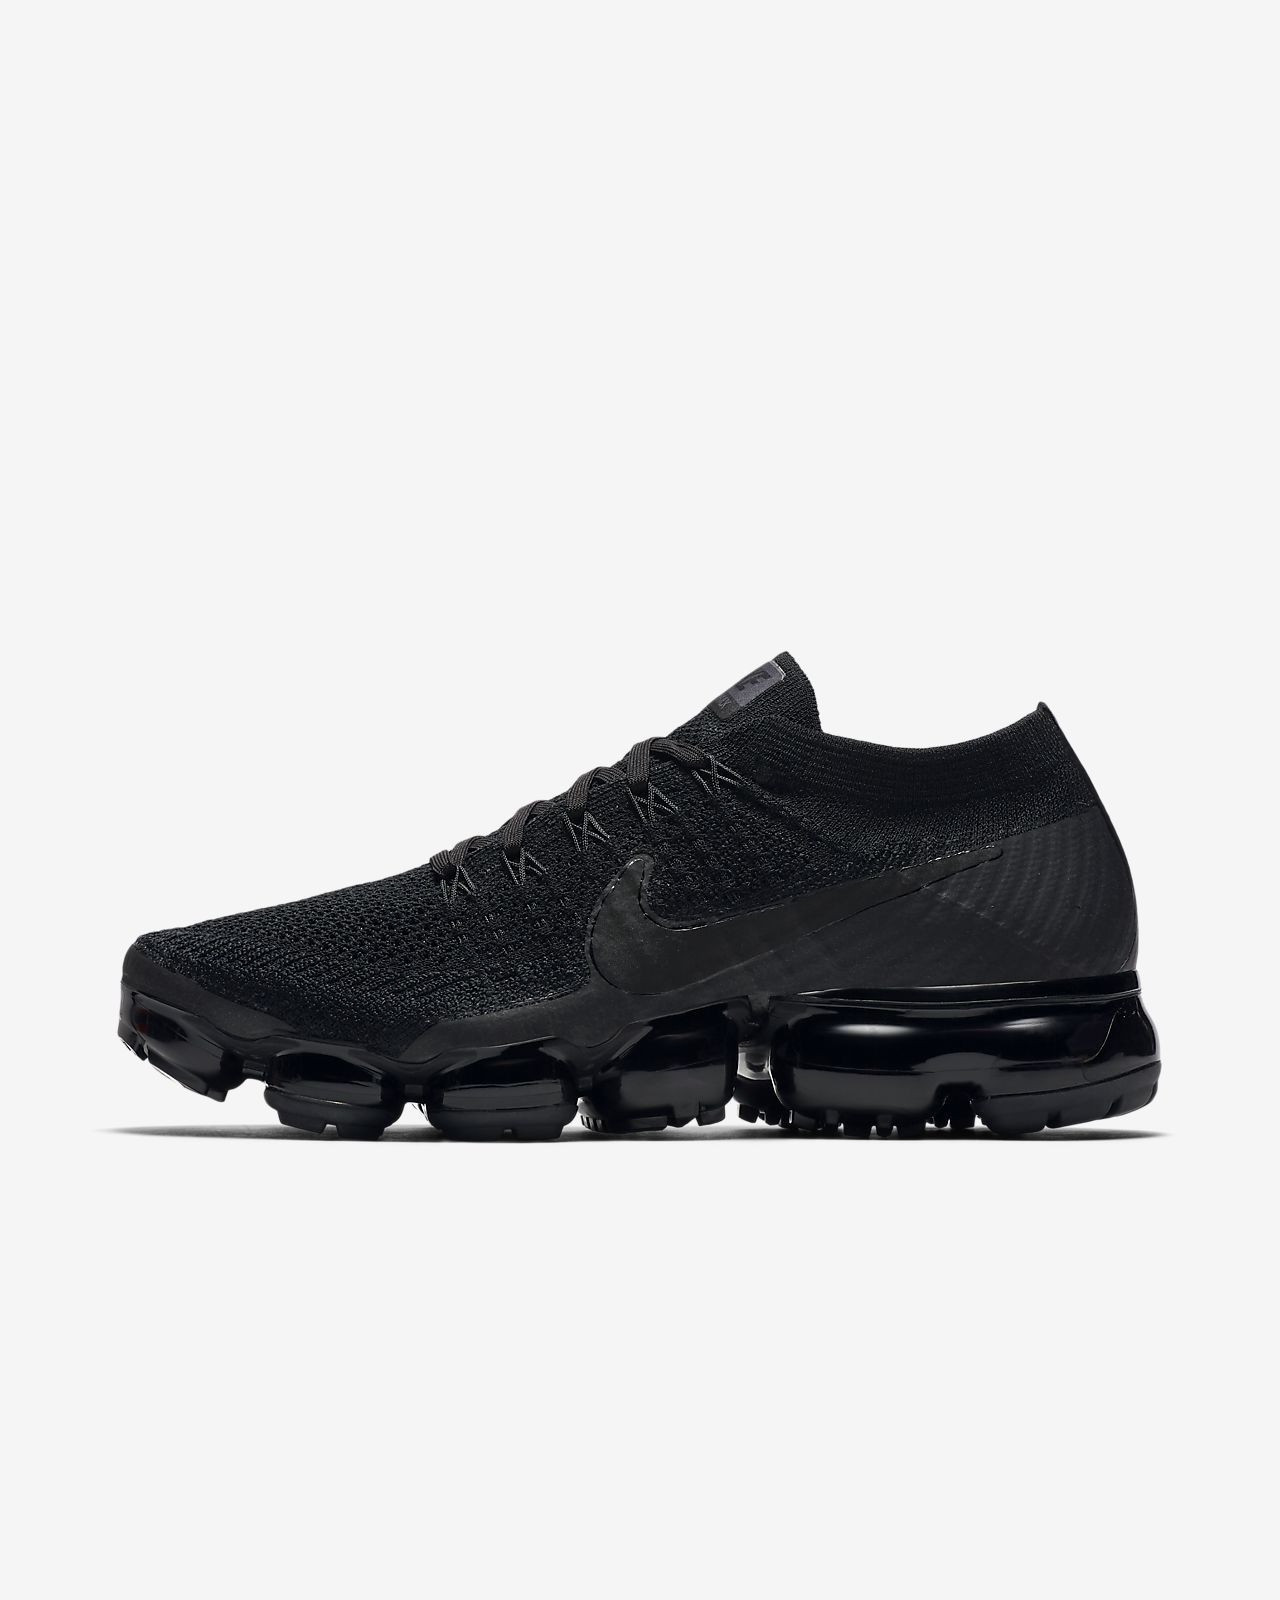 22b40dfa80 Nike Air VaporMax Flyknit 'Triple Noir' Women's Running Shoe | Fit ...